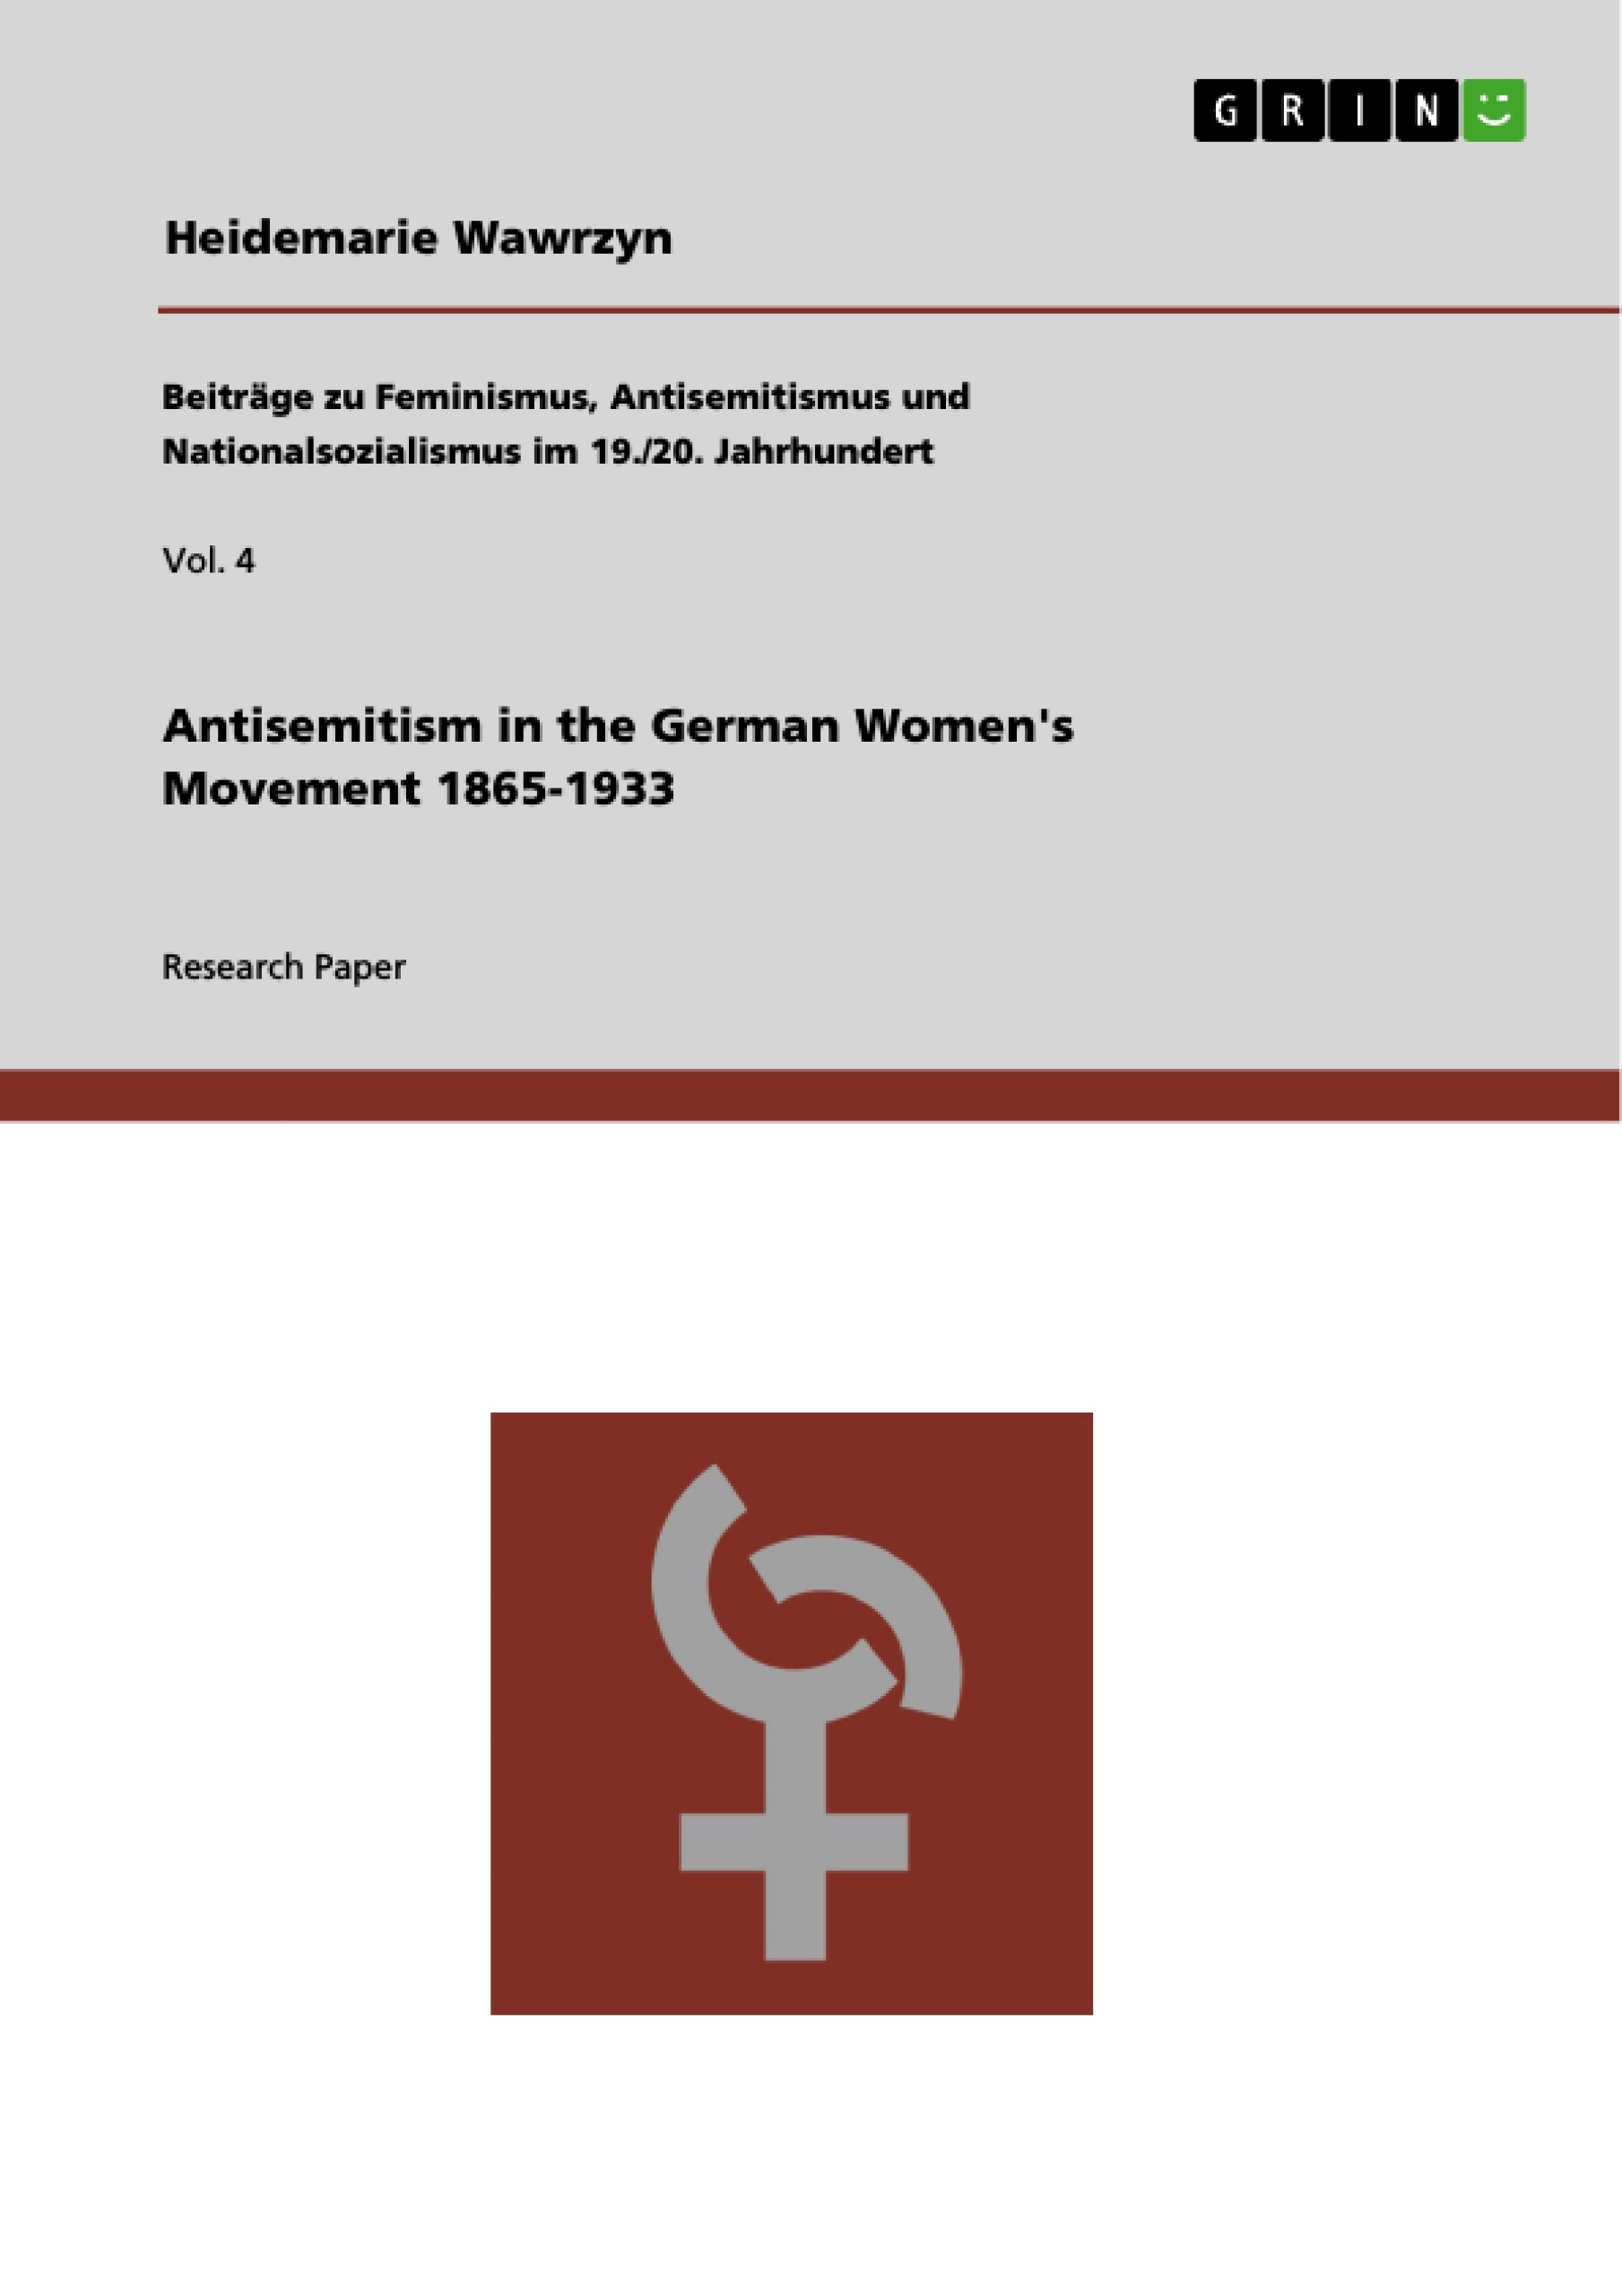 Title: Antisemitism in the German Women's Movement 1865-1933